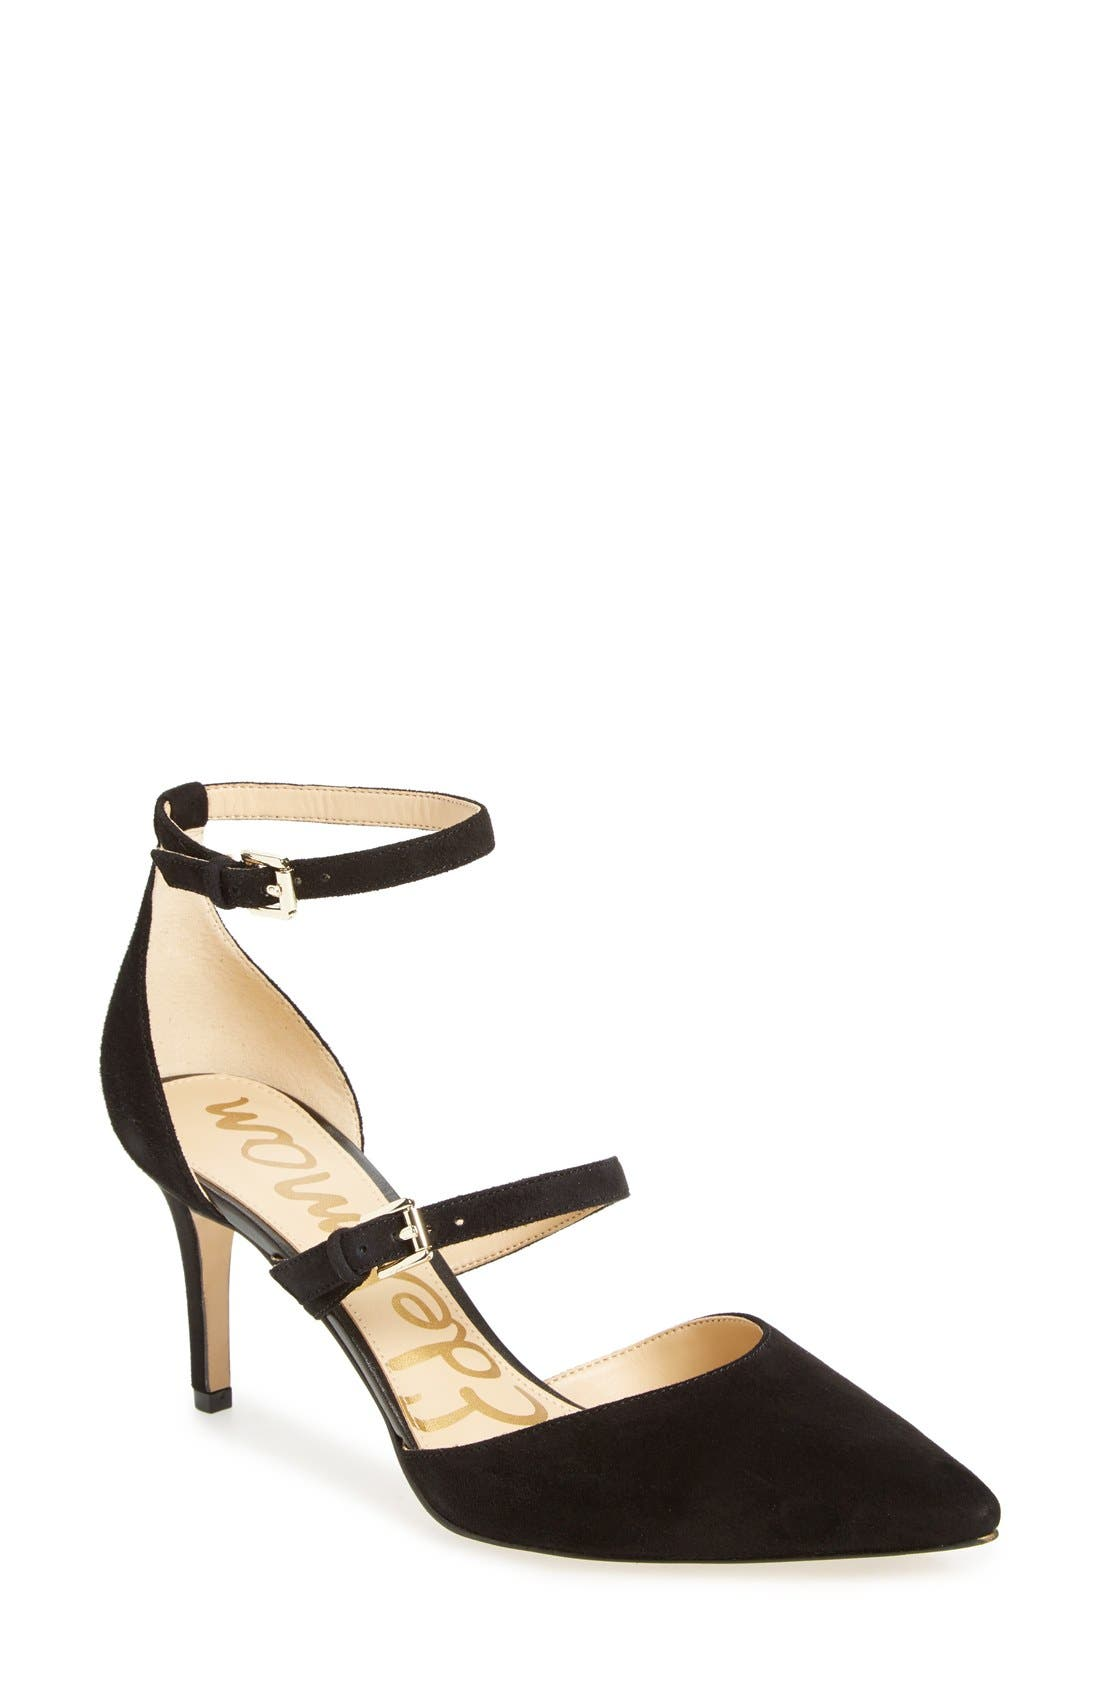 SAM EDELMAN, 'Thea' Strappy Pump, Main thumbnail 1, color, 001